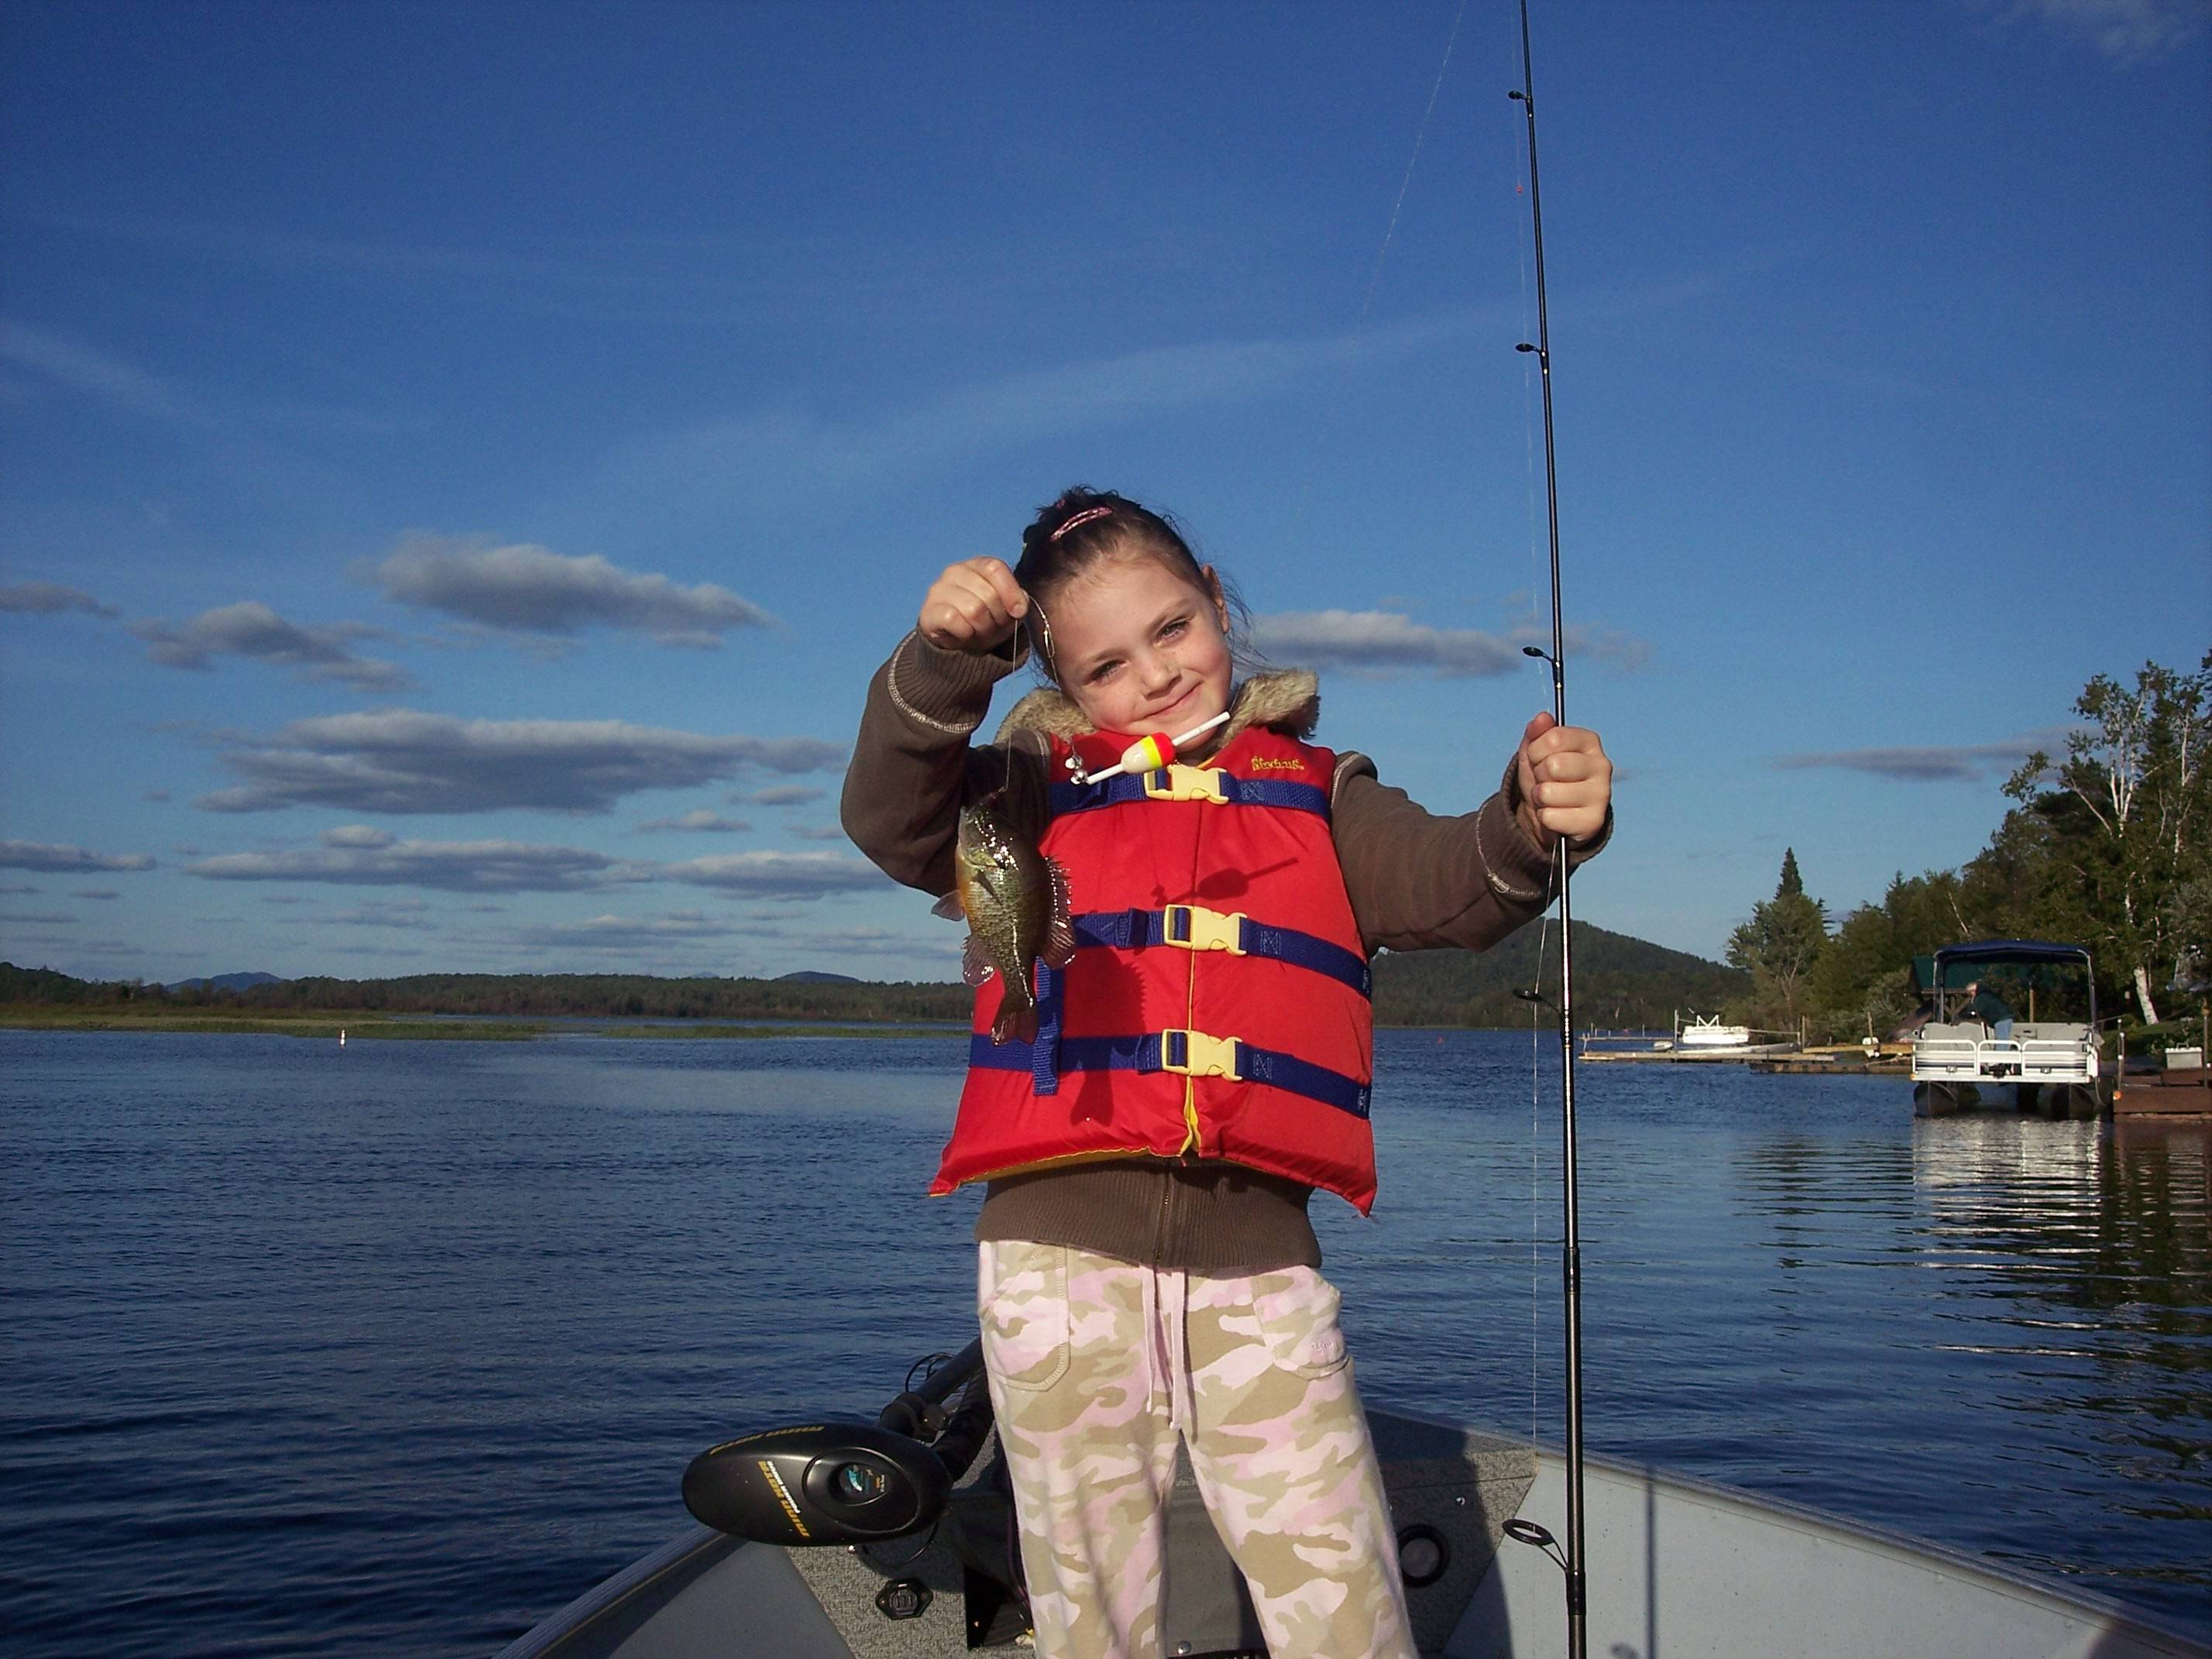 Adirondack fishing at red top inn lakefront motel resort for Kids fishing gear